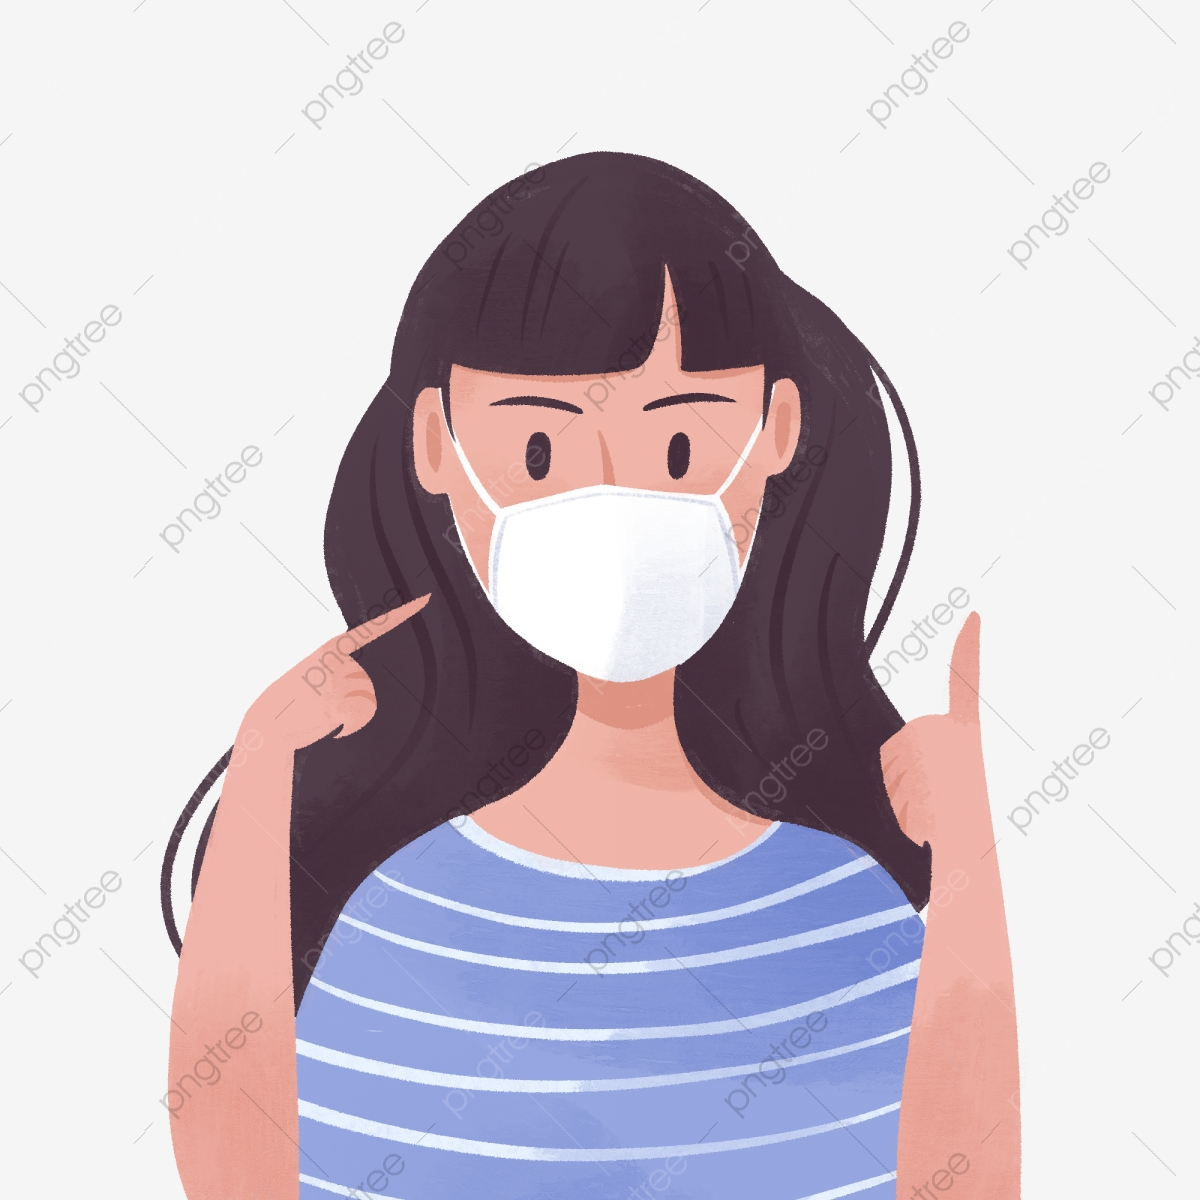 gambar kartun besar gambar png file vektor dan psd unduh gratis di pngtree https id pngtree com freepng hand drawn cute girl wearing mask 5341060 html